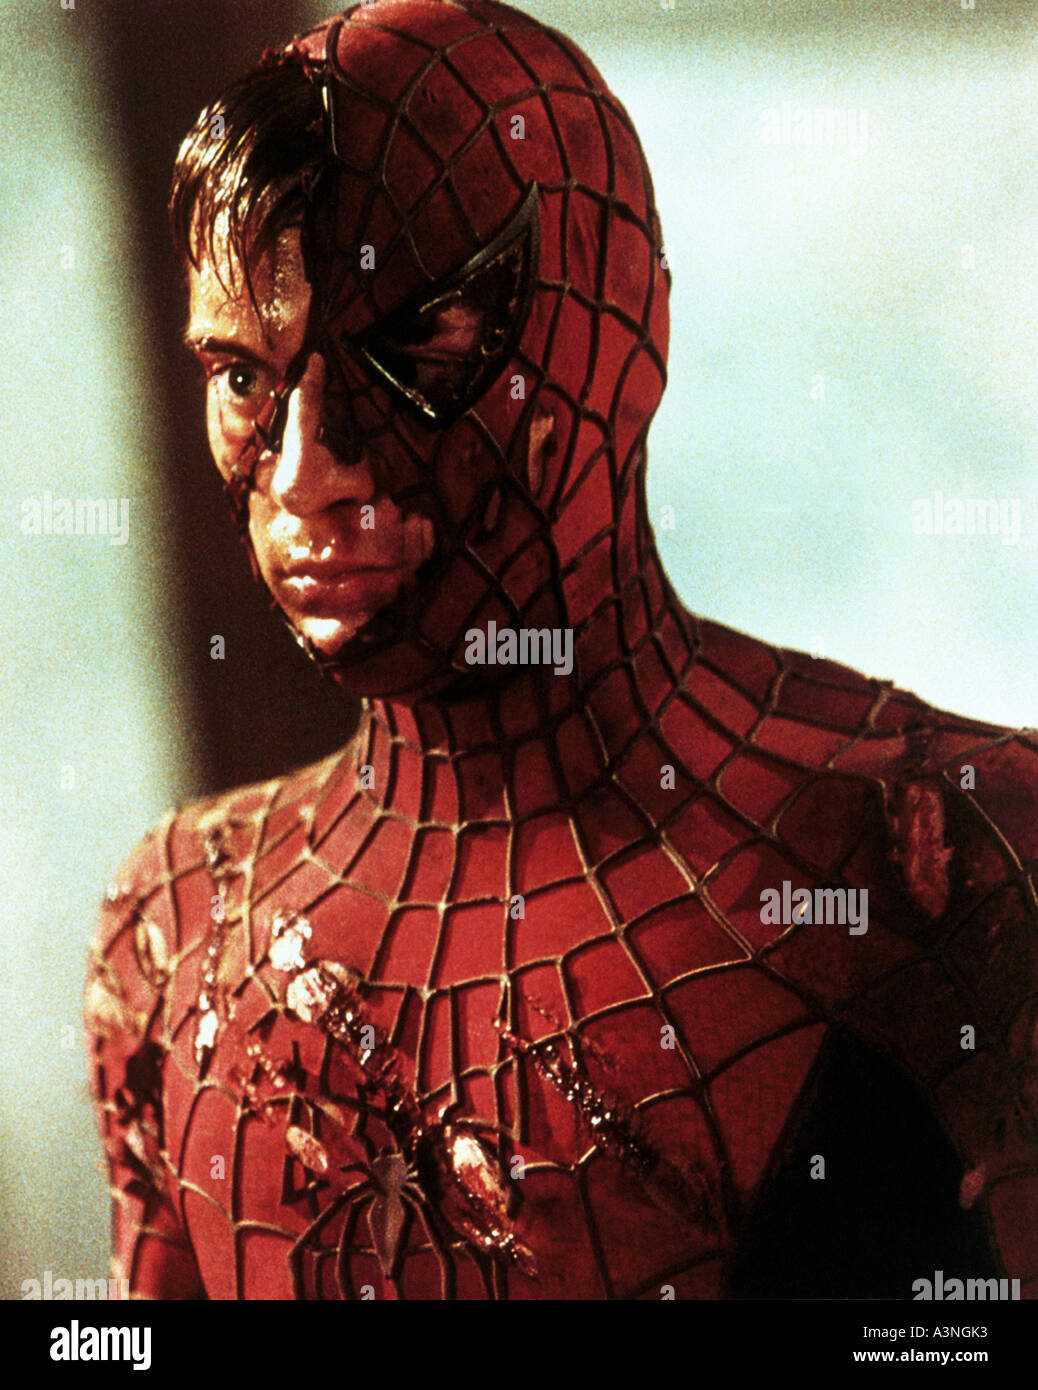 spiderman tobey maguire in the title role of the 2002